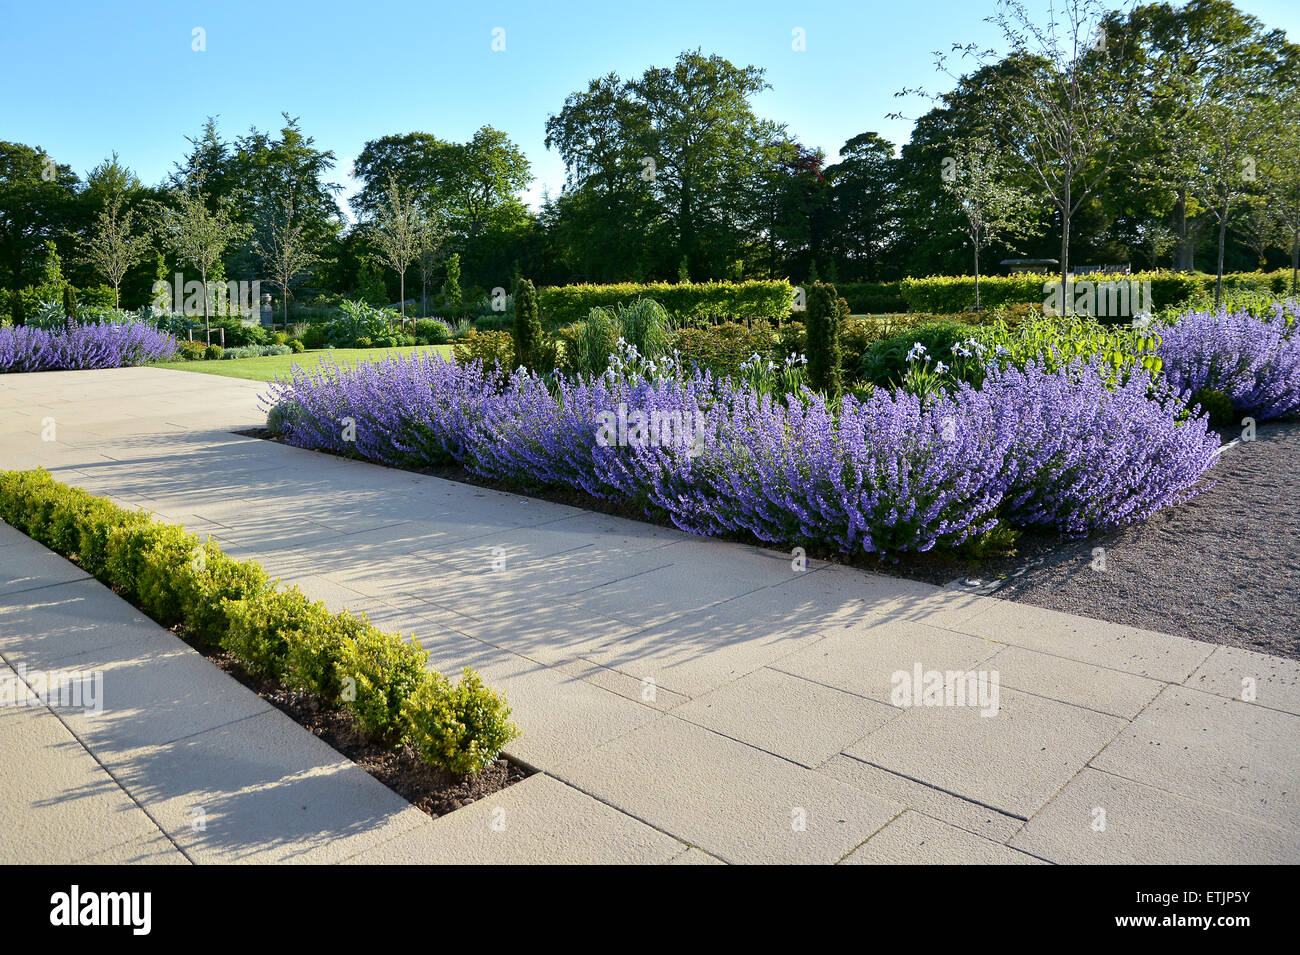 English Country Summer Garden with beds of lavender and hedges - Stock Image